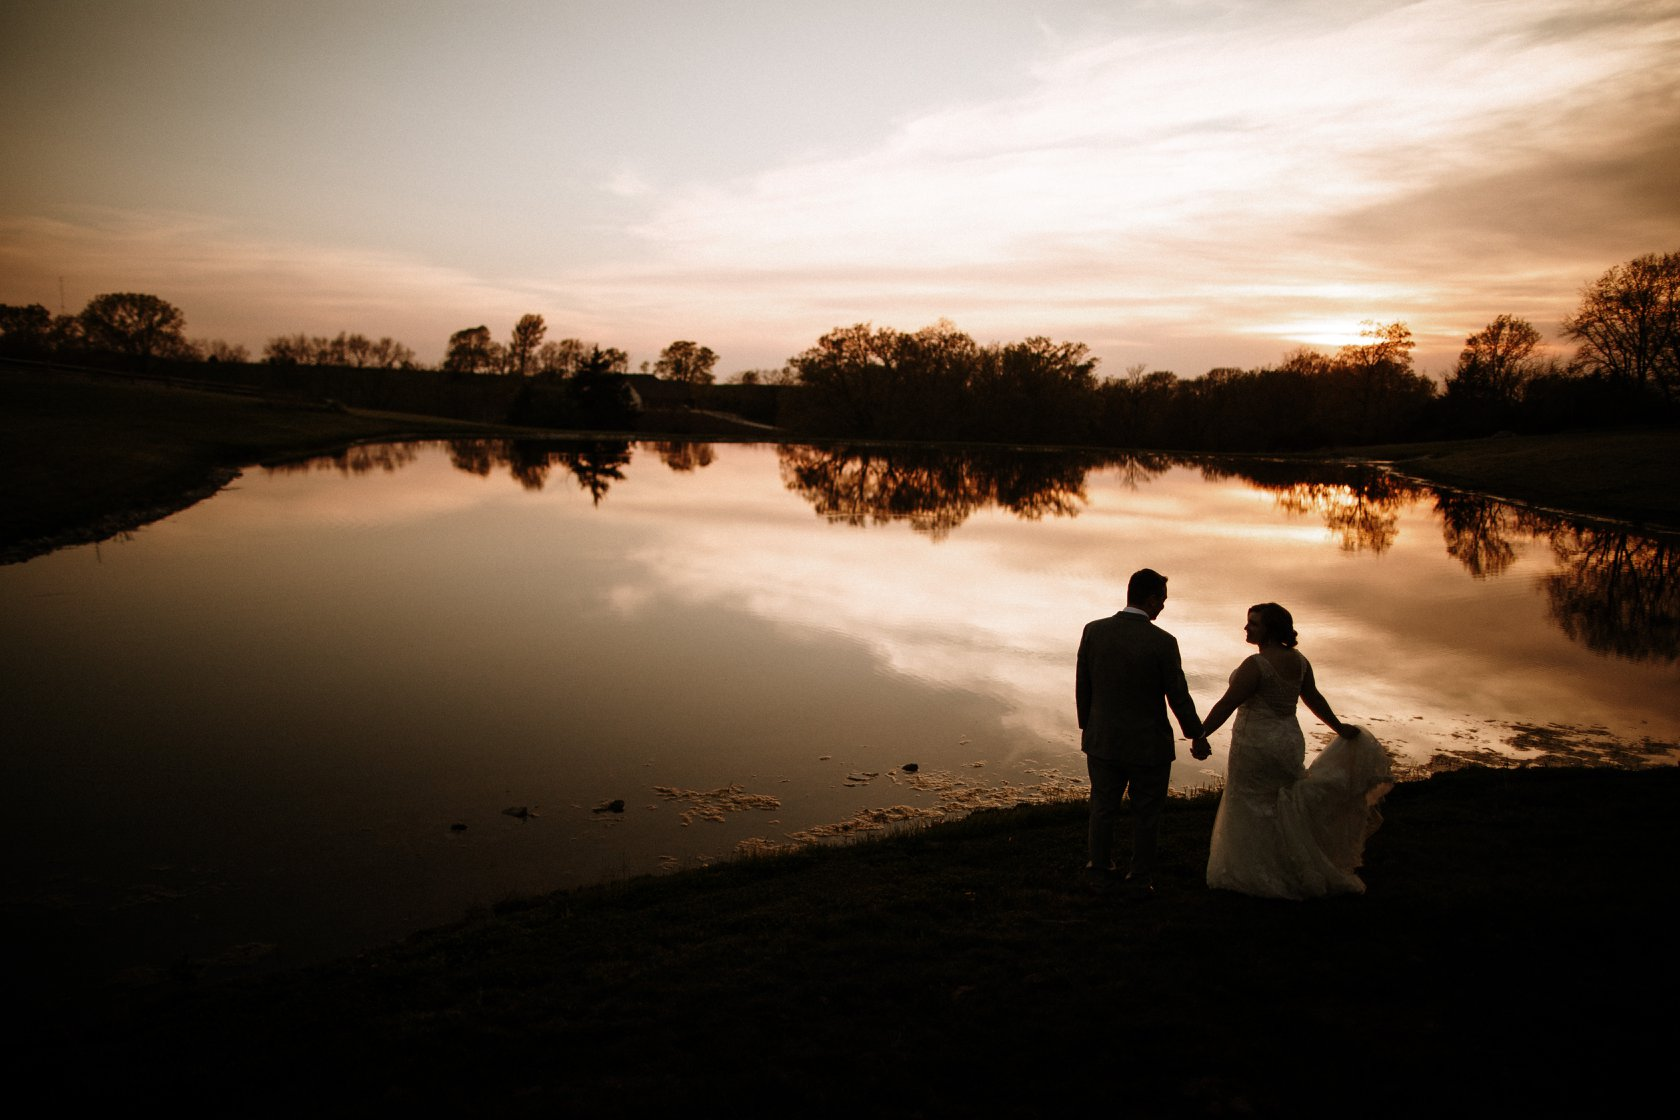 A bride and groom holding hands and posing in front of a lake during sunset